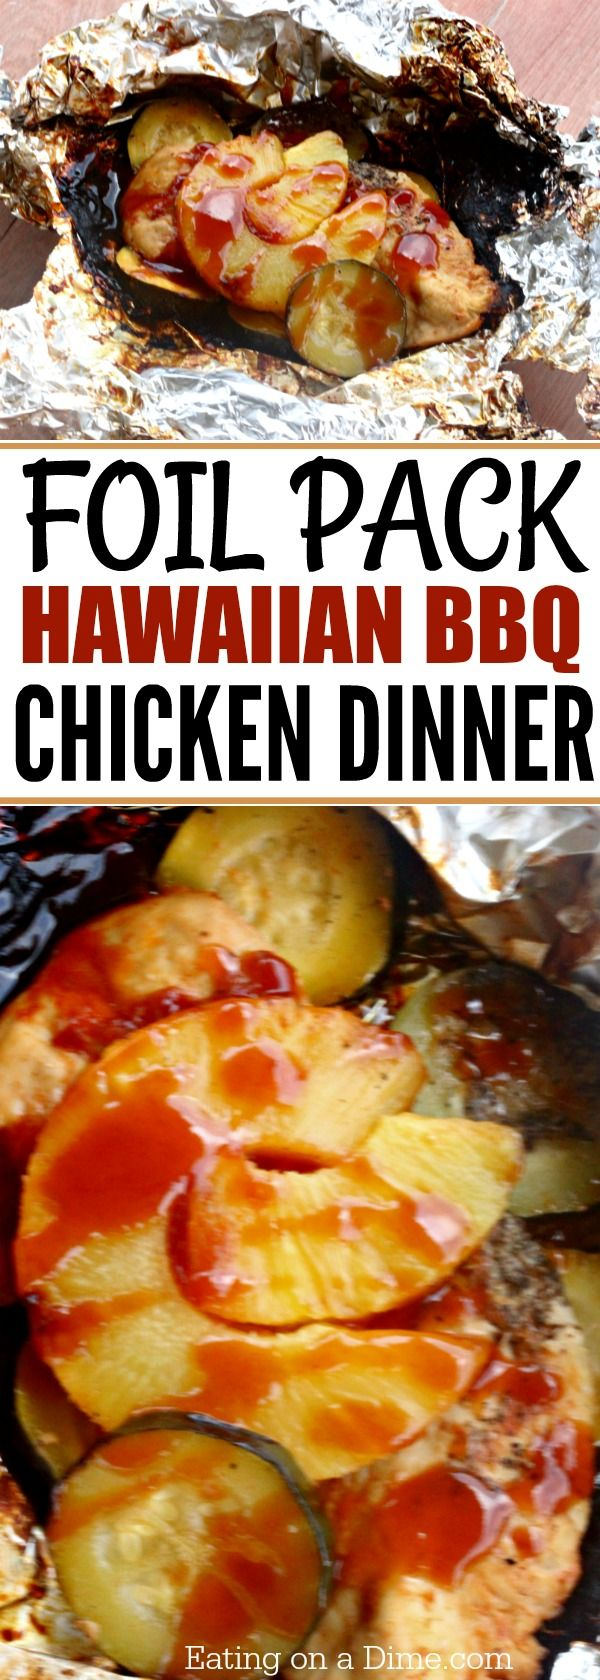 Foil Packet Hawaiian BBQ Chicken Recipe  Great Camping or Easy Weeknight Meal!